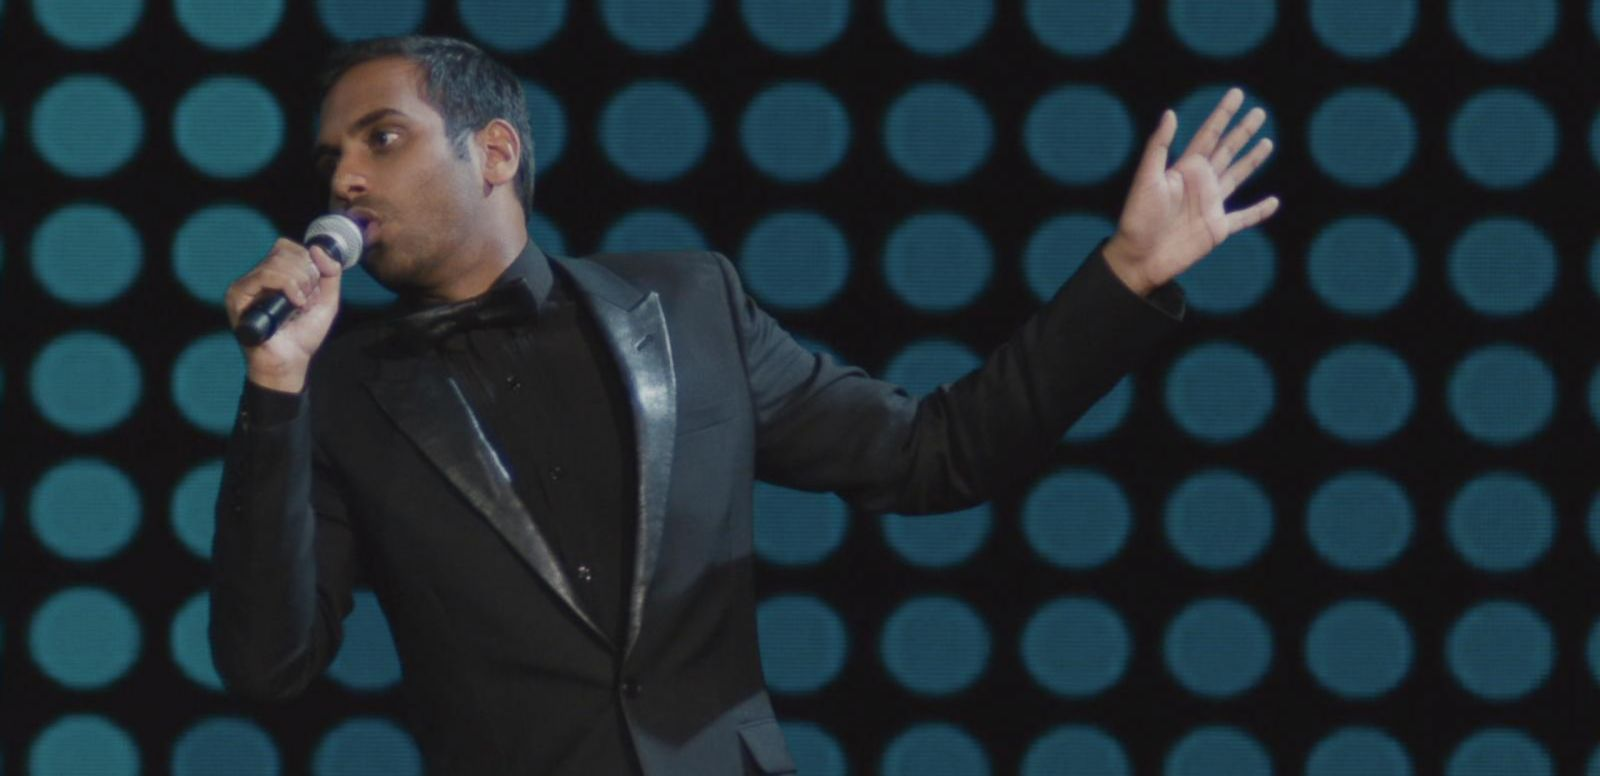 VIDEO: Aziz Ansari Discusses the Digital Age in 'Modern Romance'